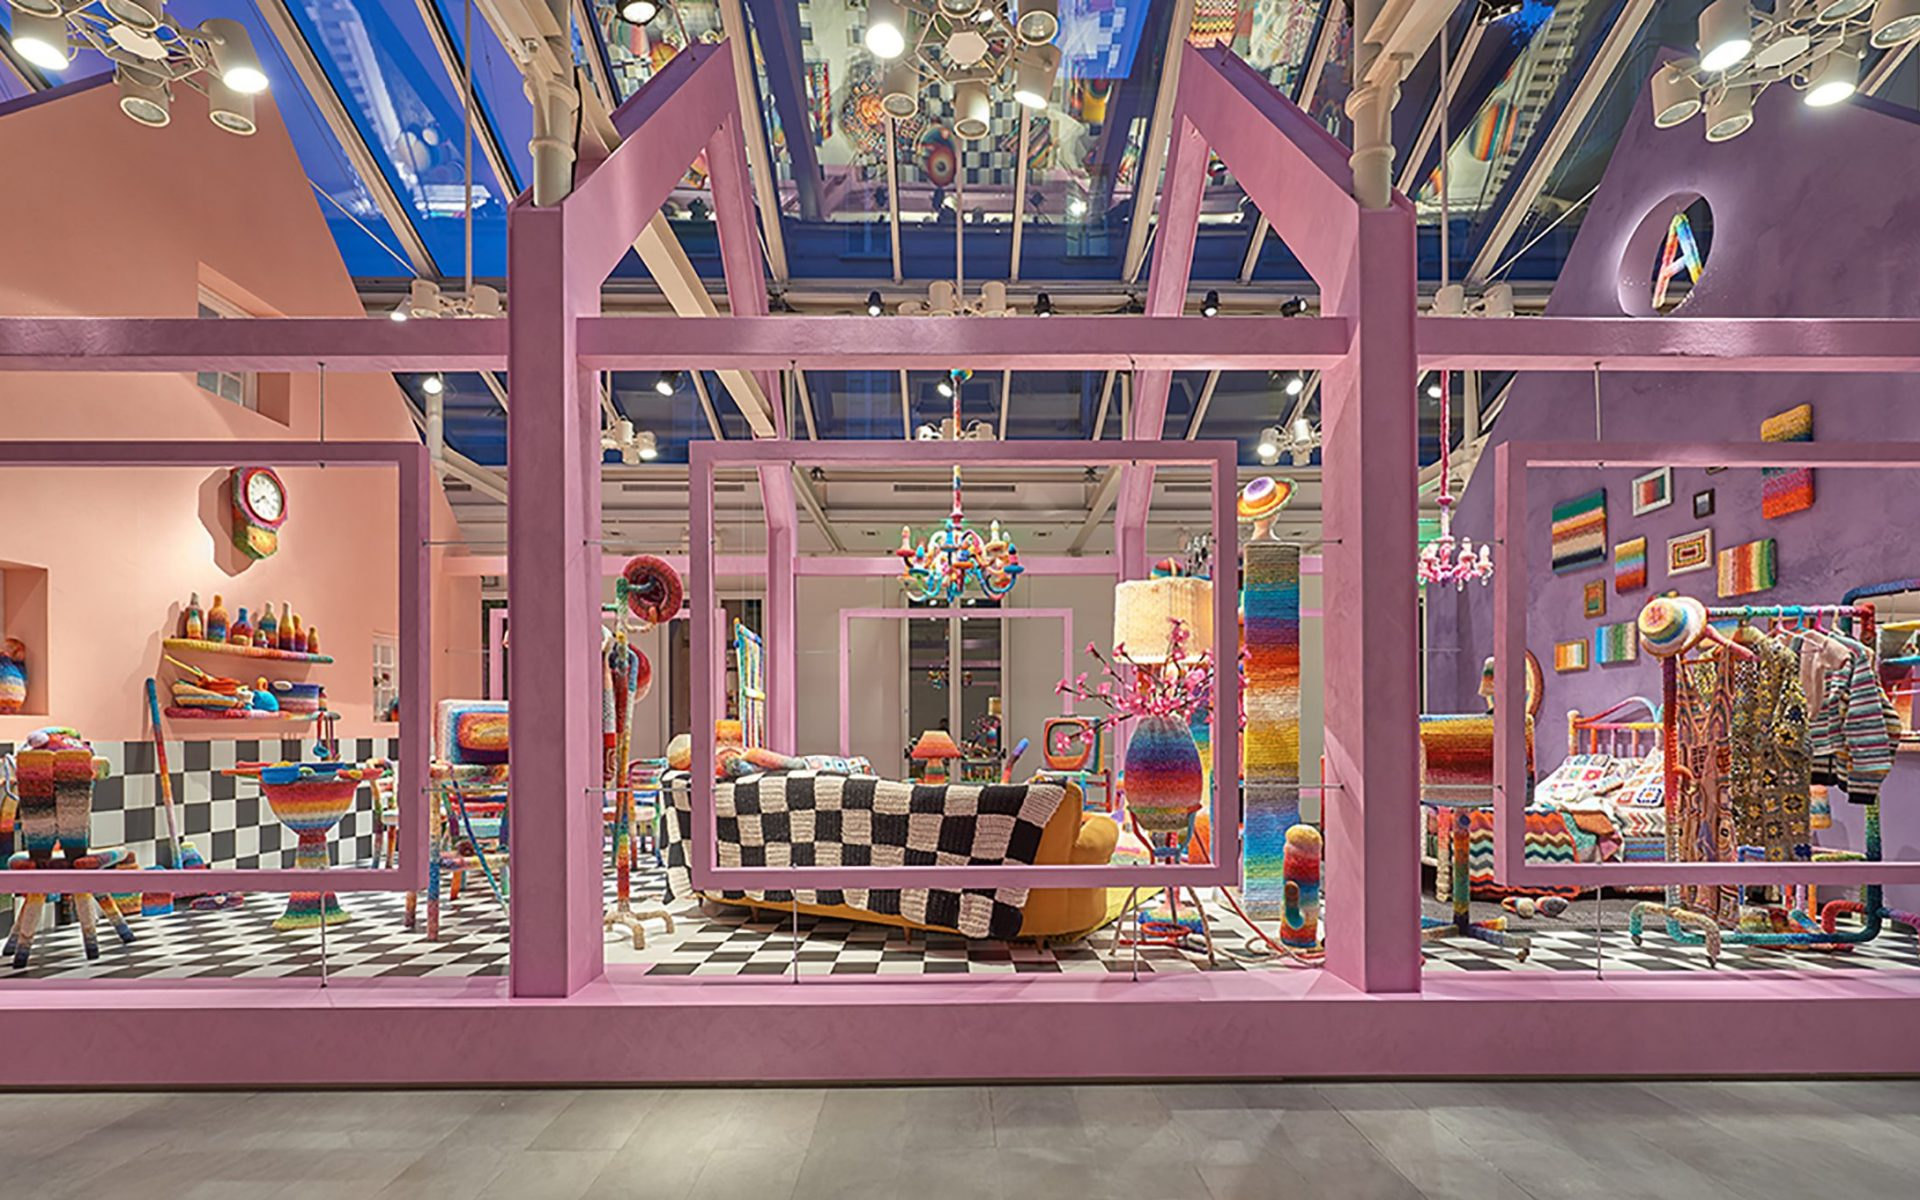 Salon Du Design Milan 2019 here are the trends spotted at milan's salone del mobile